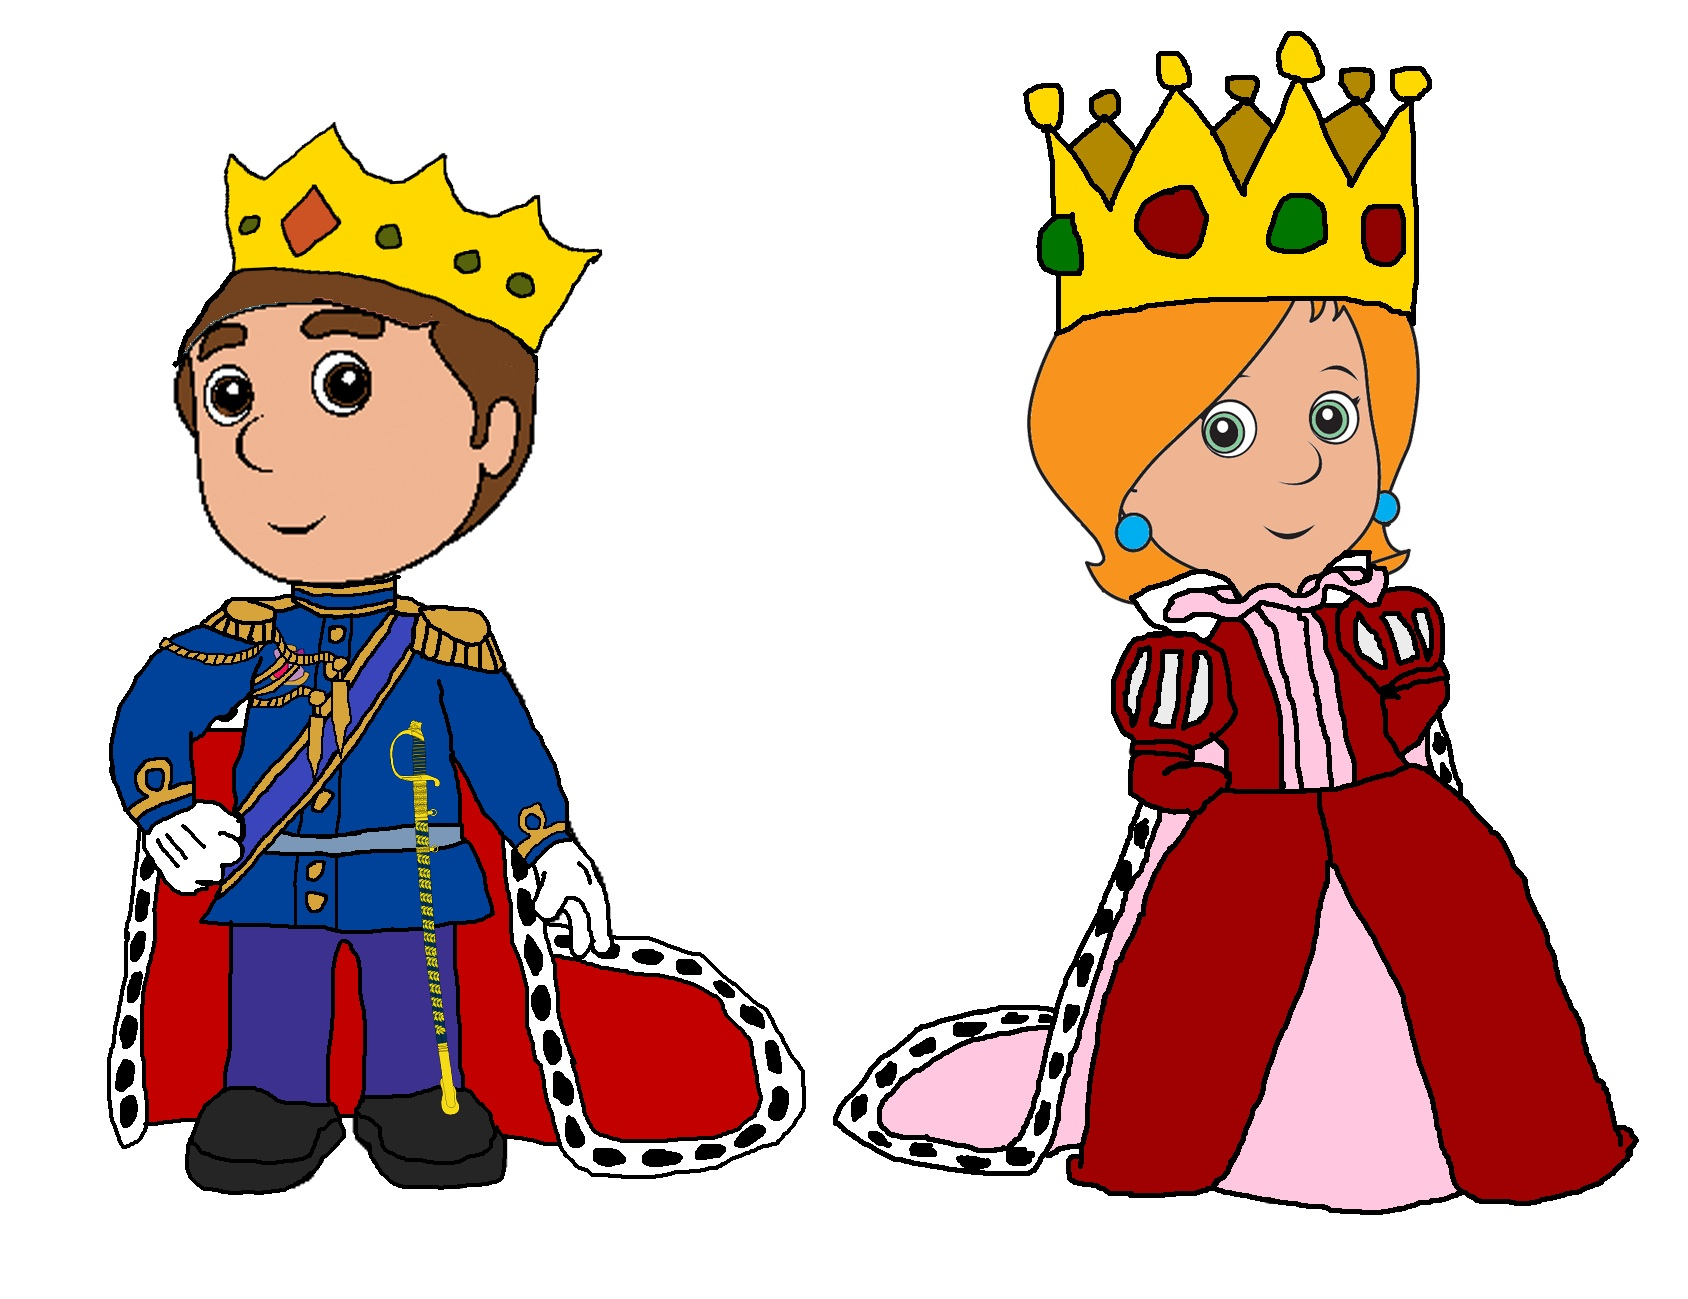 Clipart Of Kings. King cliparts